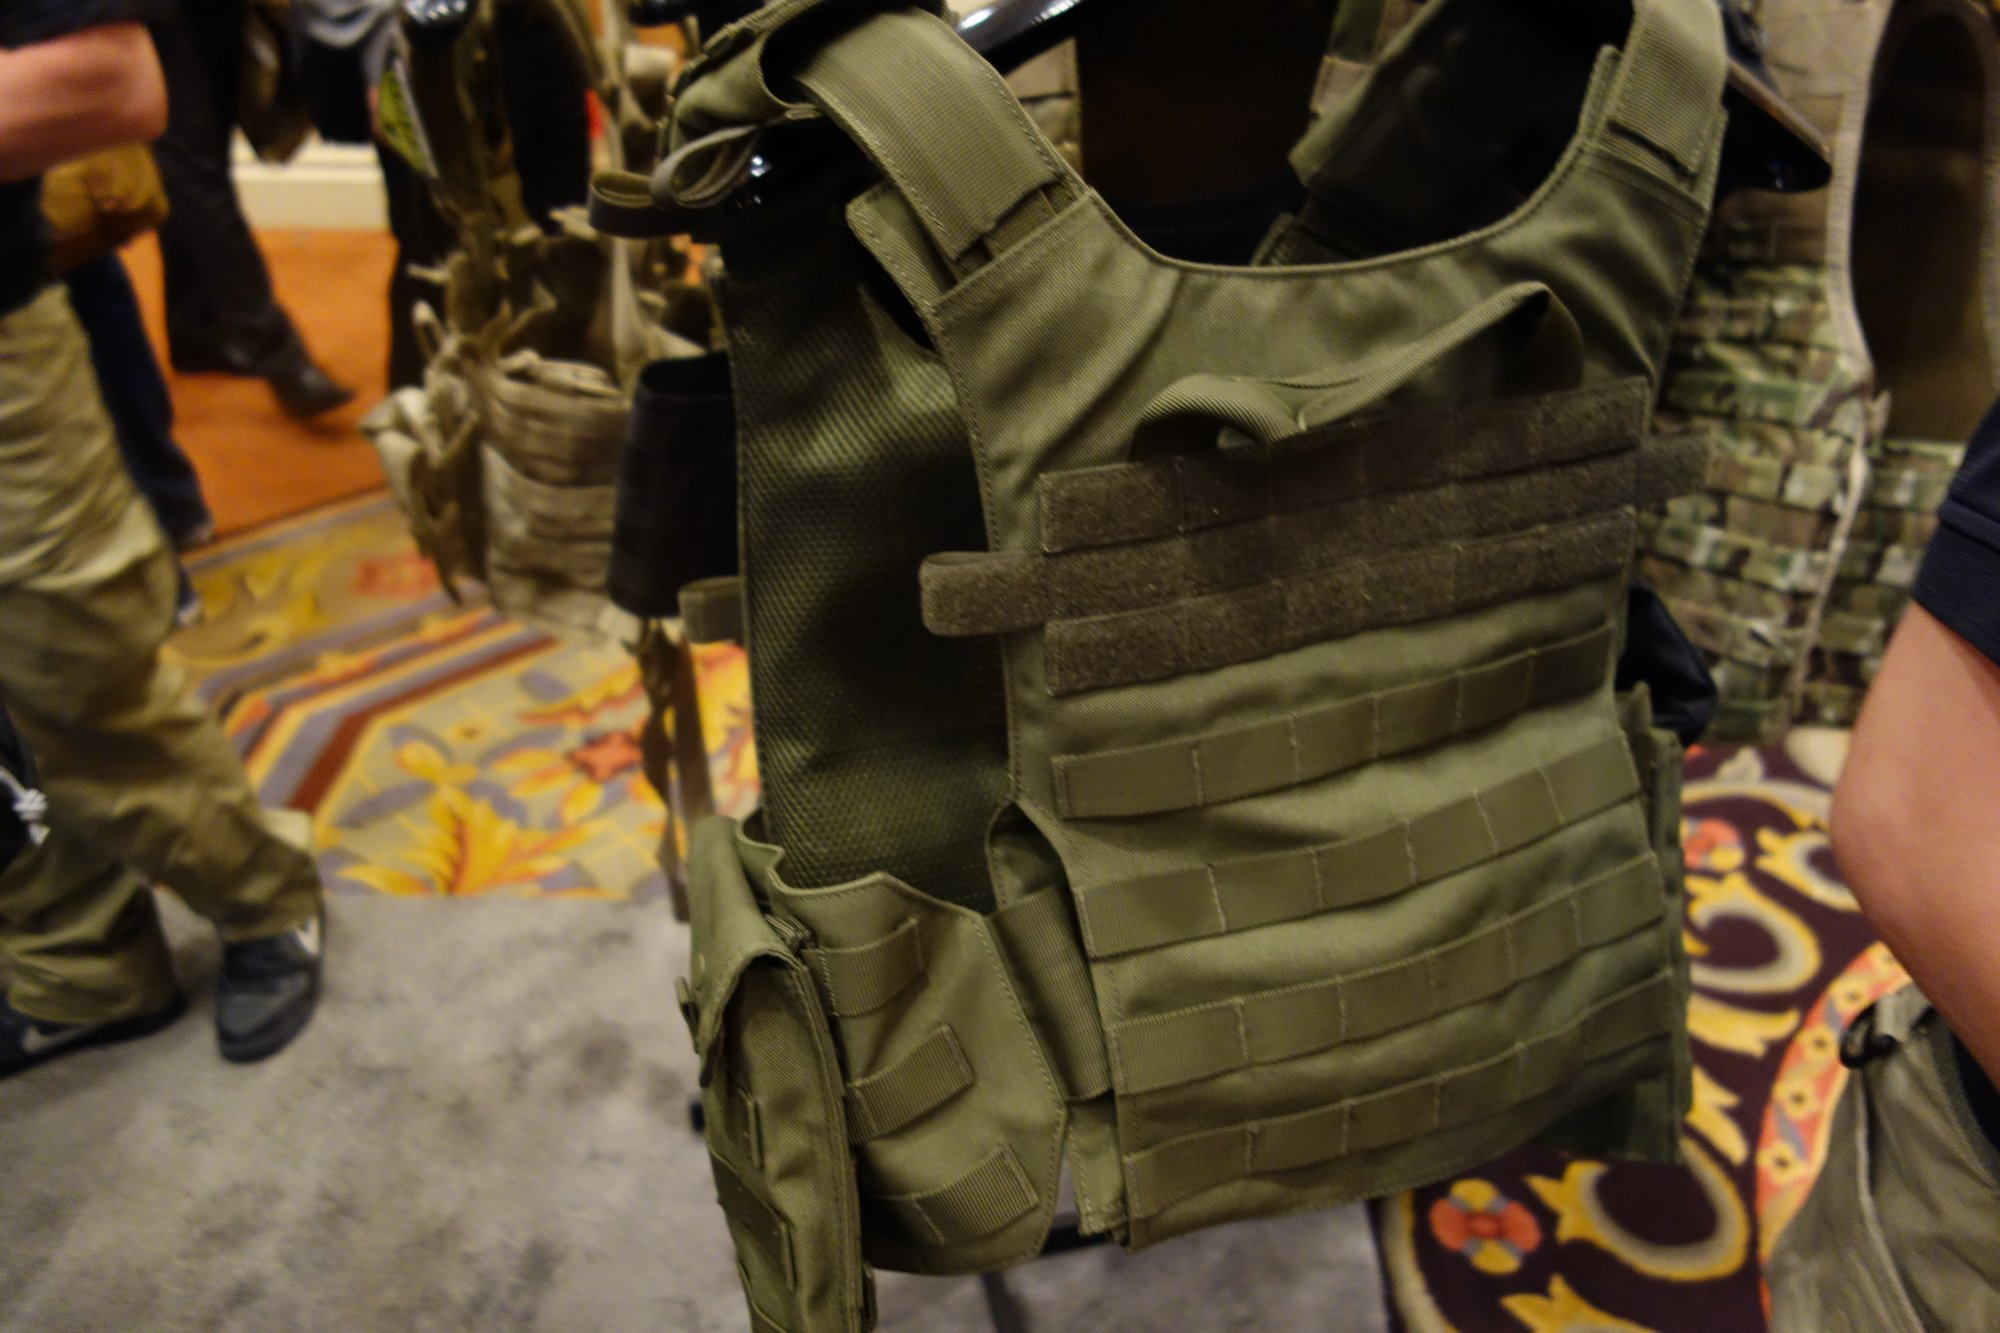 Condor Gunner Lightweight Plate Carrier Quick Release Tactical Armor Plate Carrier Body Armor Tactical Vest Henry Ko Condor Outdoor Products SHOT Show 2014 David Crane DefenseReview.com DR 4 Condor Gunner Lightweight Plate Carrier: Minimalist Quick Release Tactical Armor Plate Carrier/Tactical Vest (Body Armor) for Tactical Operations